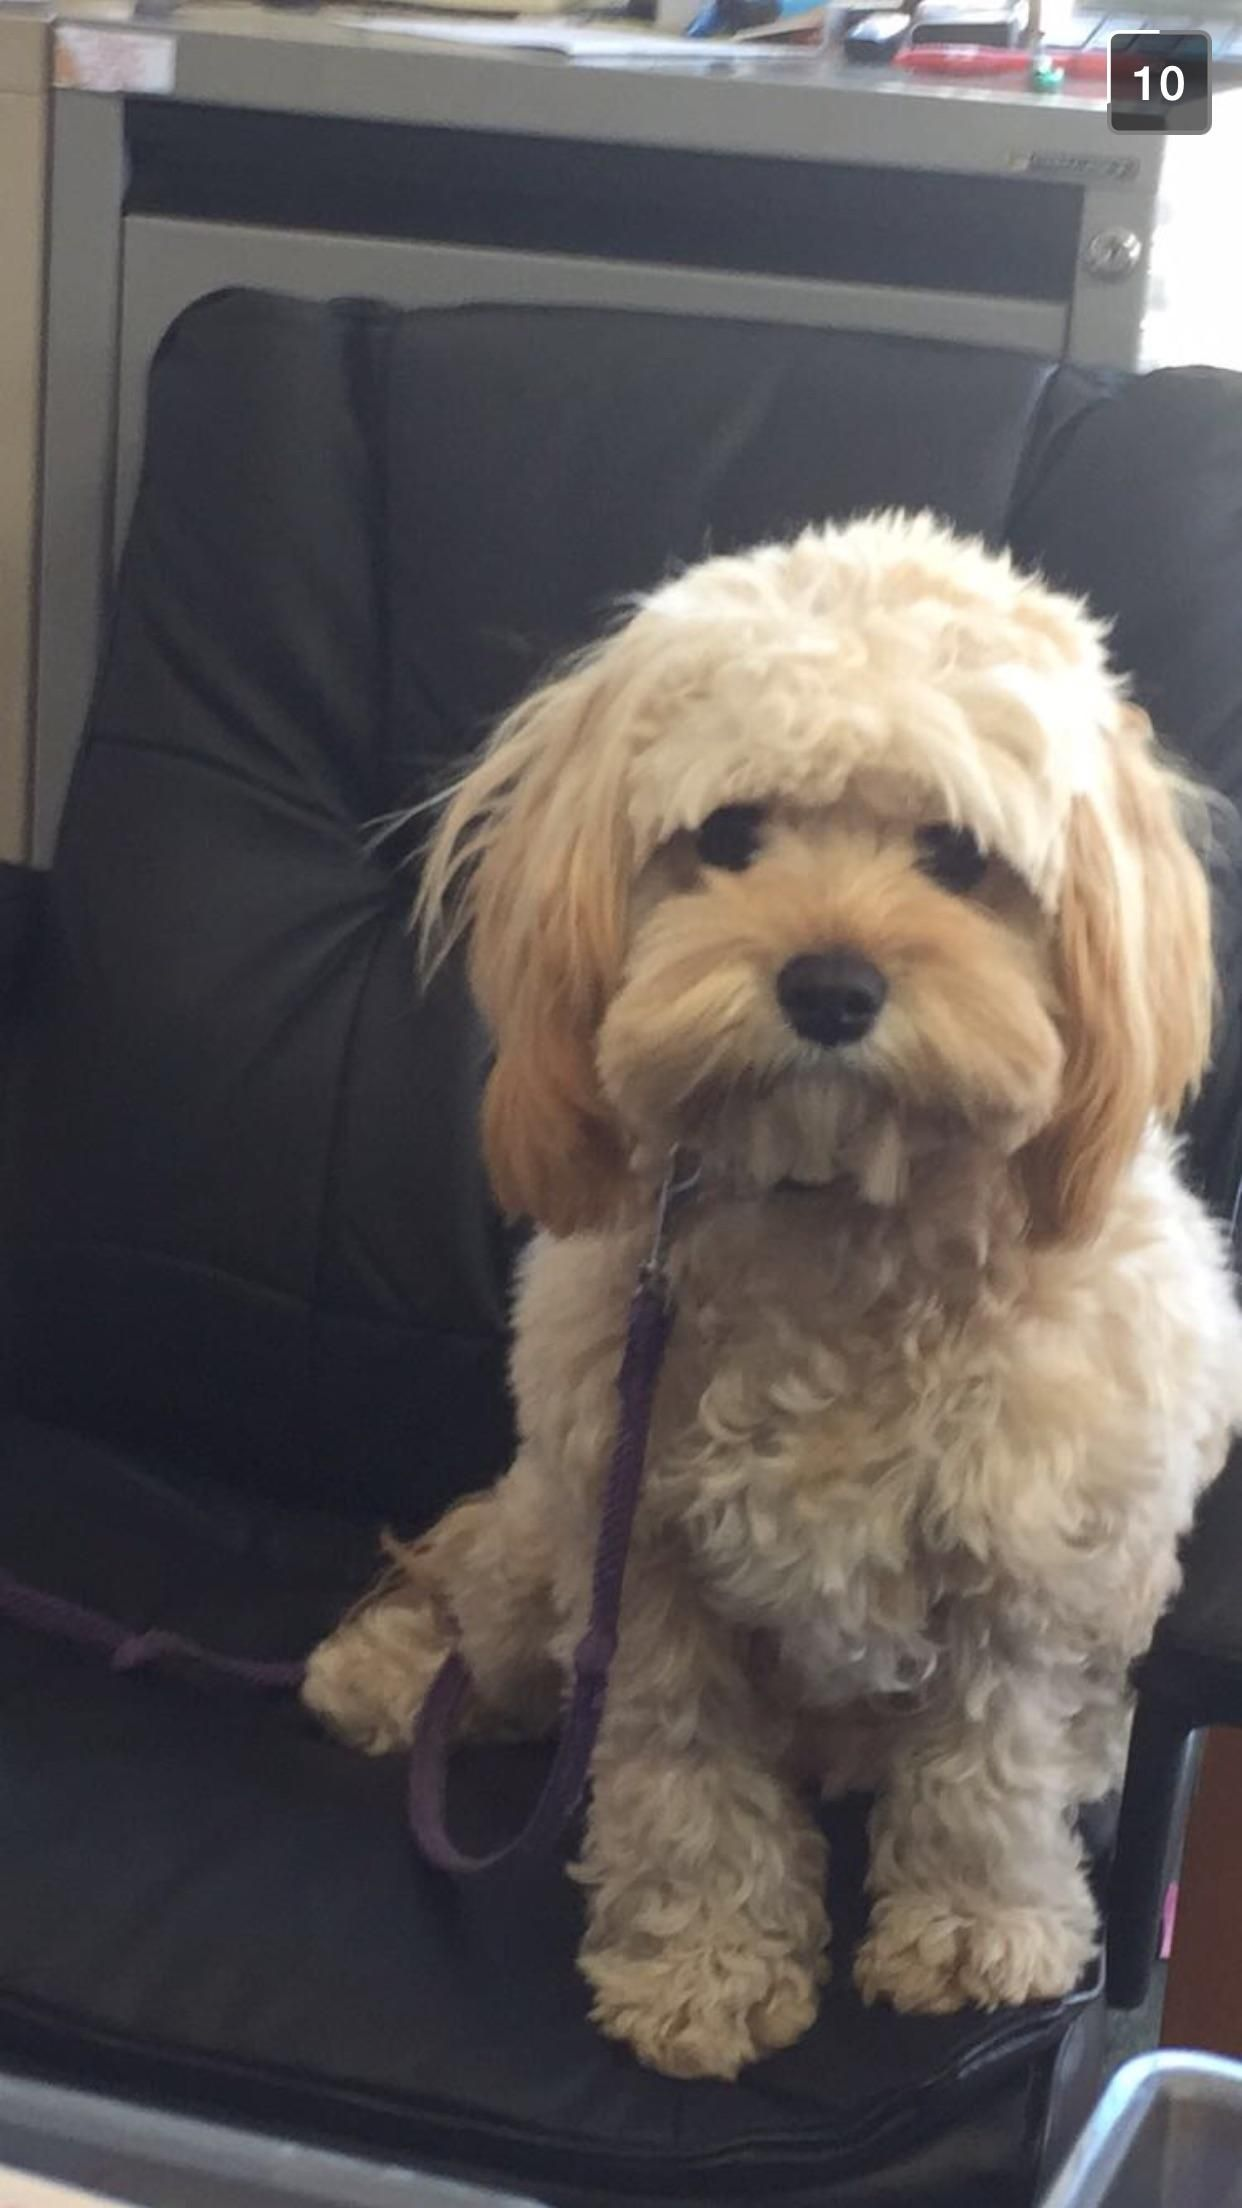 Puppy For Sale 6 Month Old Cavoodle In Los Angeles Http Ift Tt 2pqdu8q Puppies Puppies For Sale Puppy Training